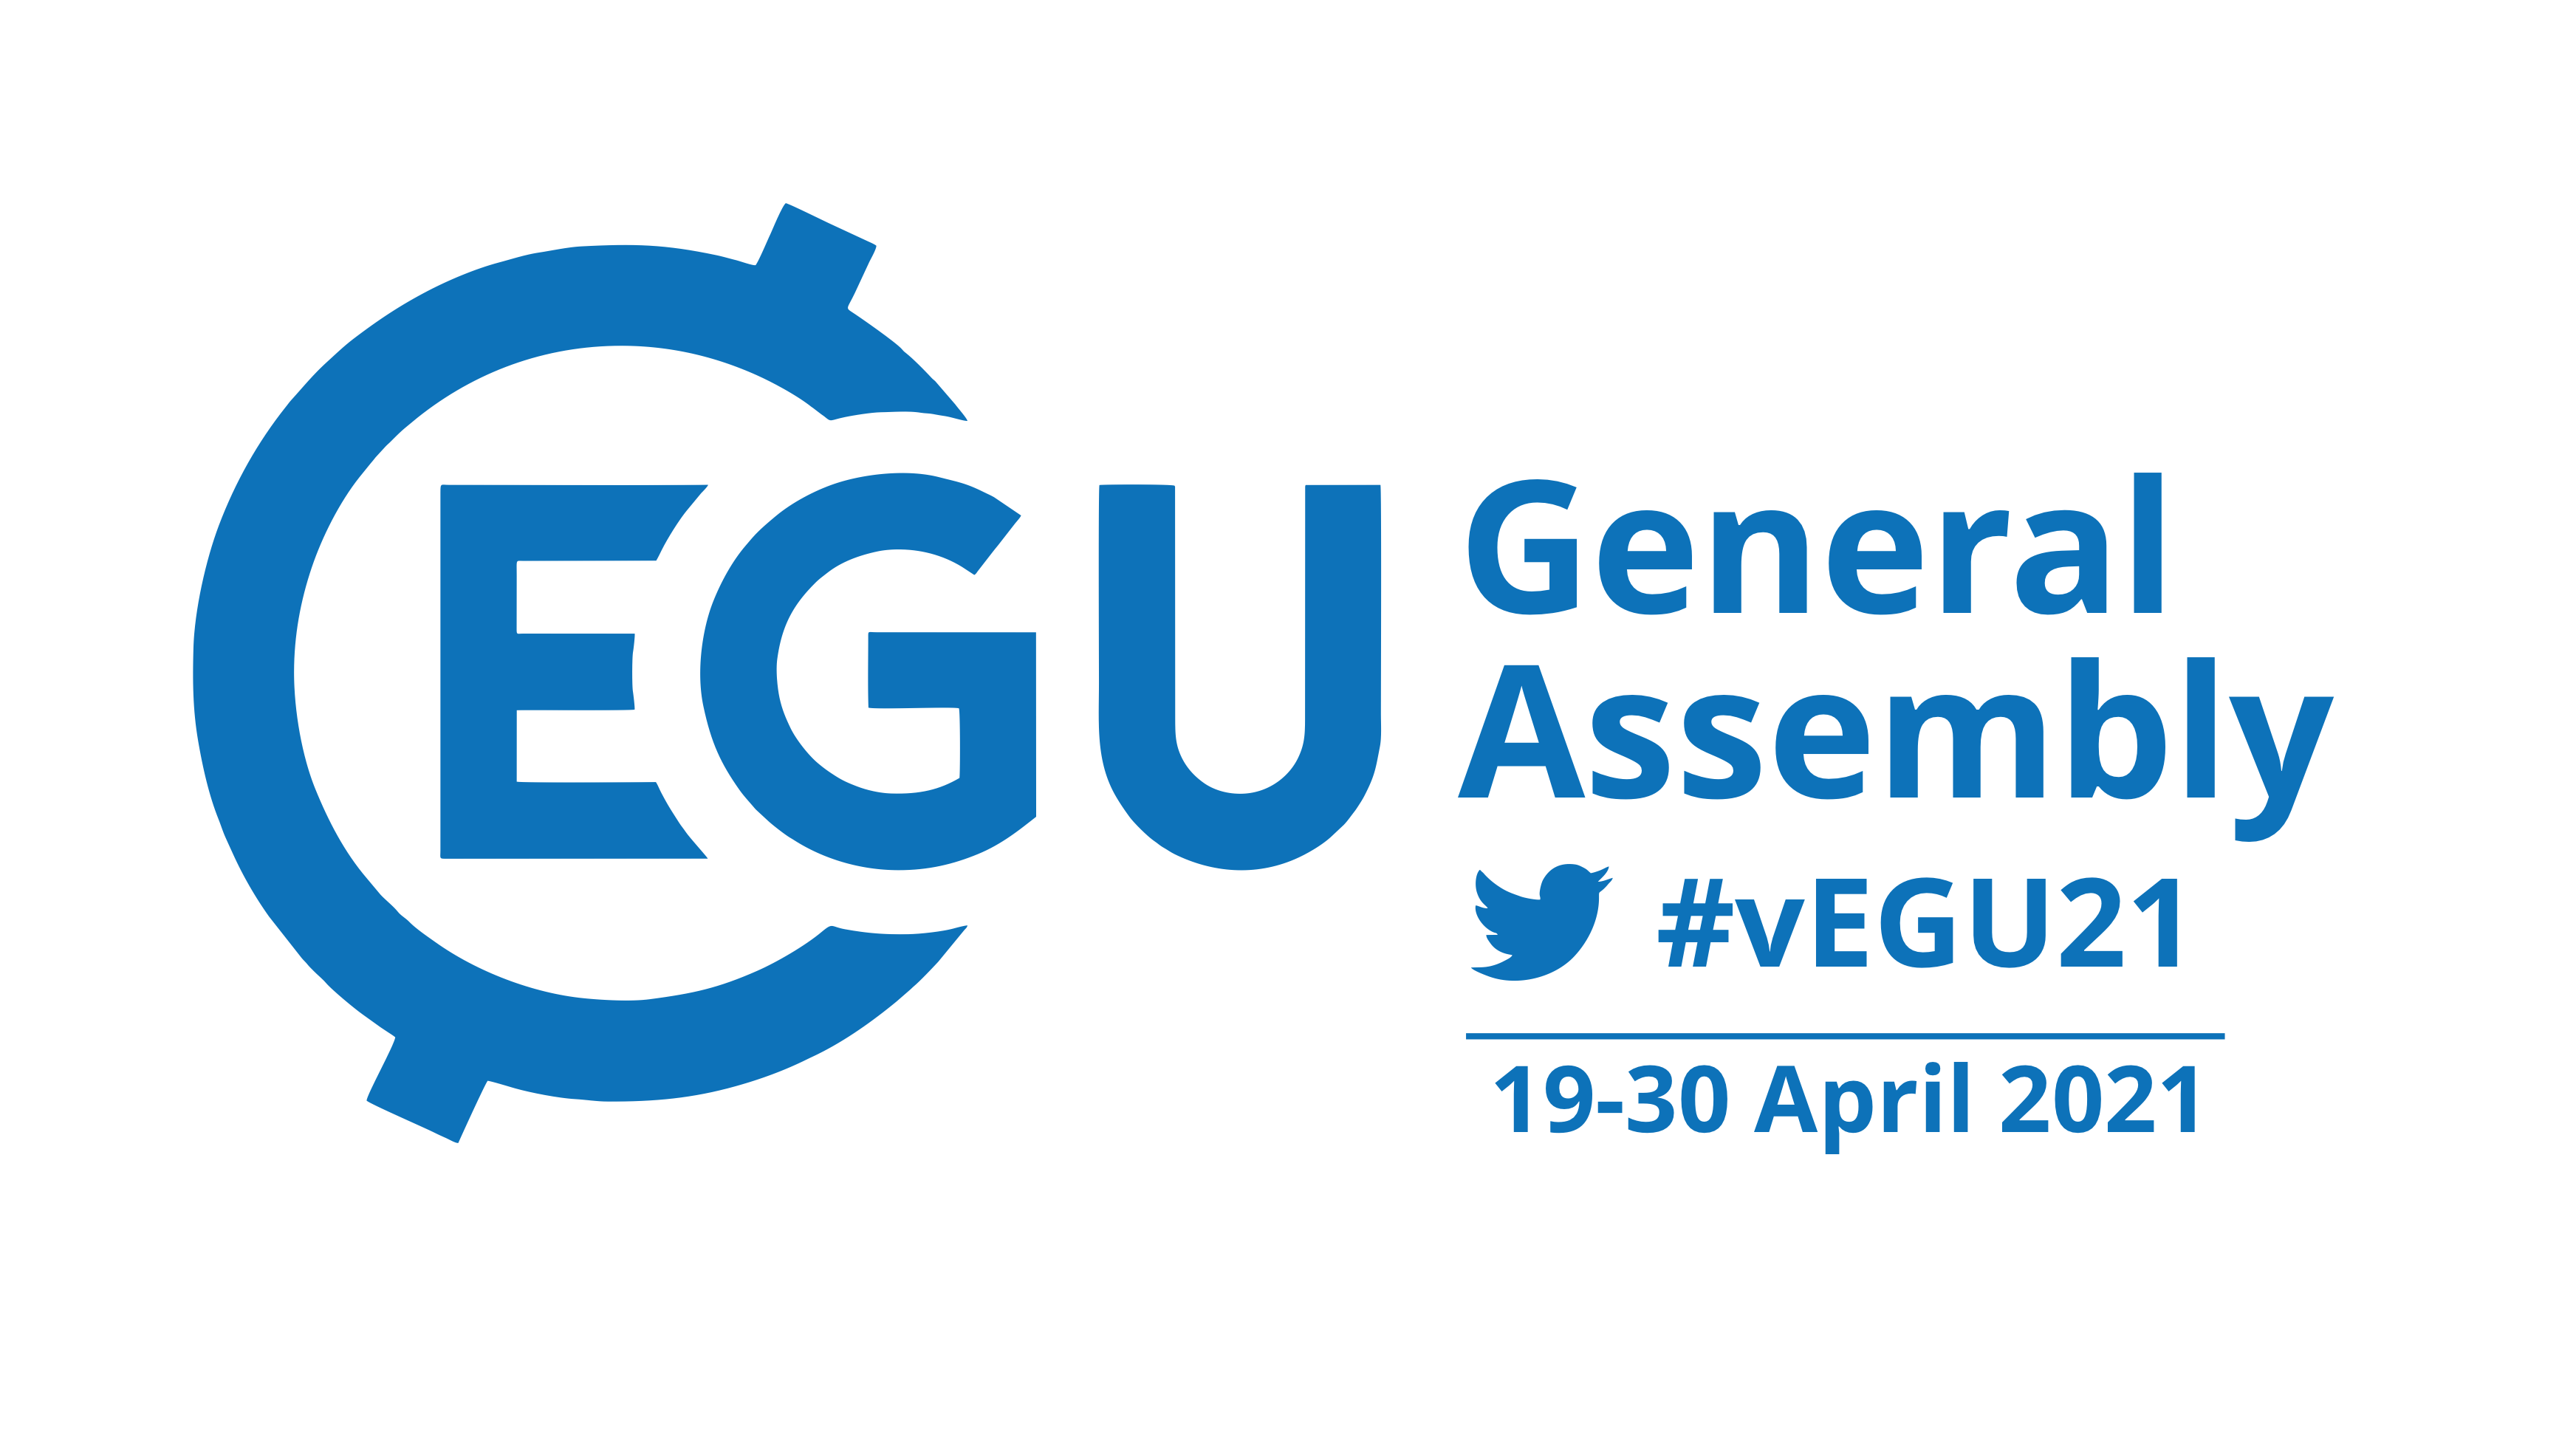 The SPECIAL presence at the EGU General Assembly 2021 by Yicheng Shen